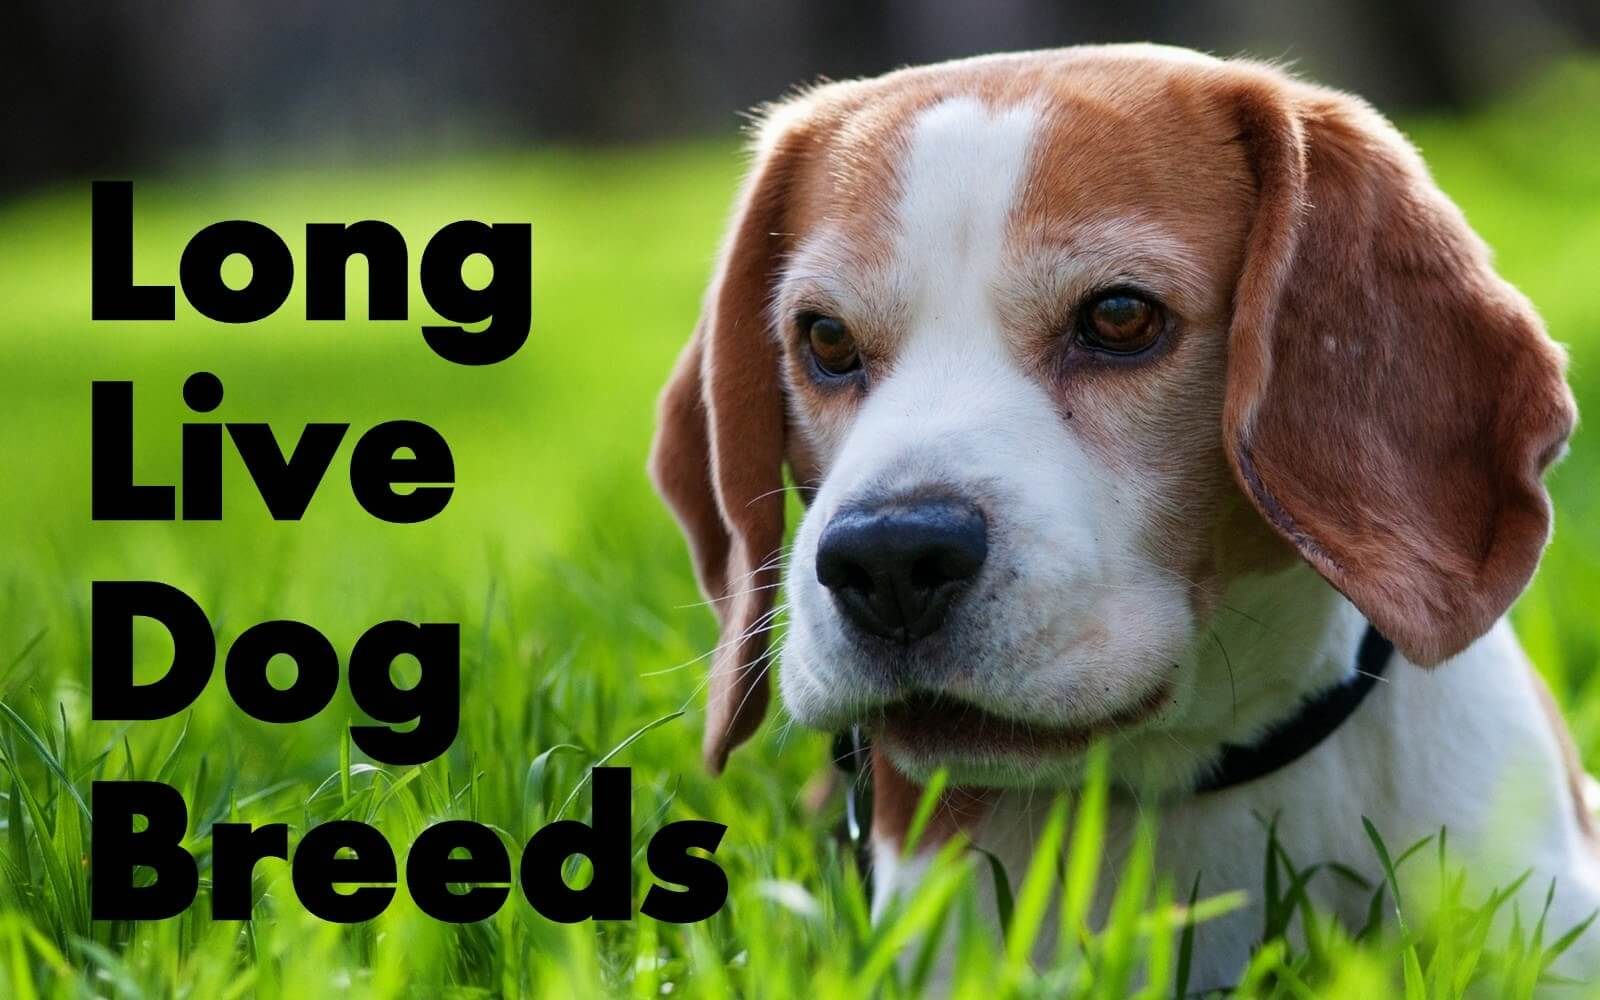 TOP 10 Dog Breeds That Live the Longest